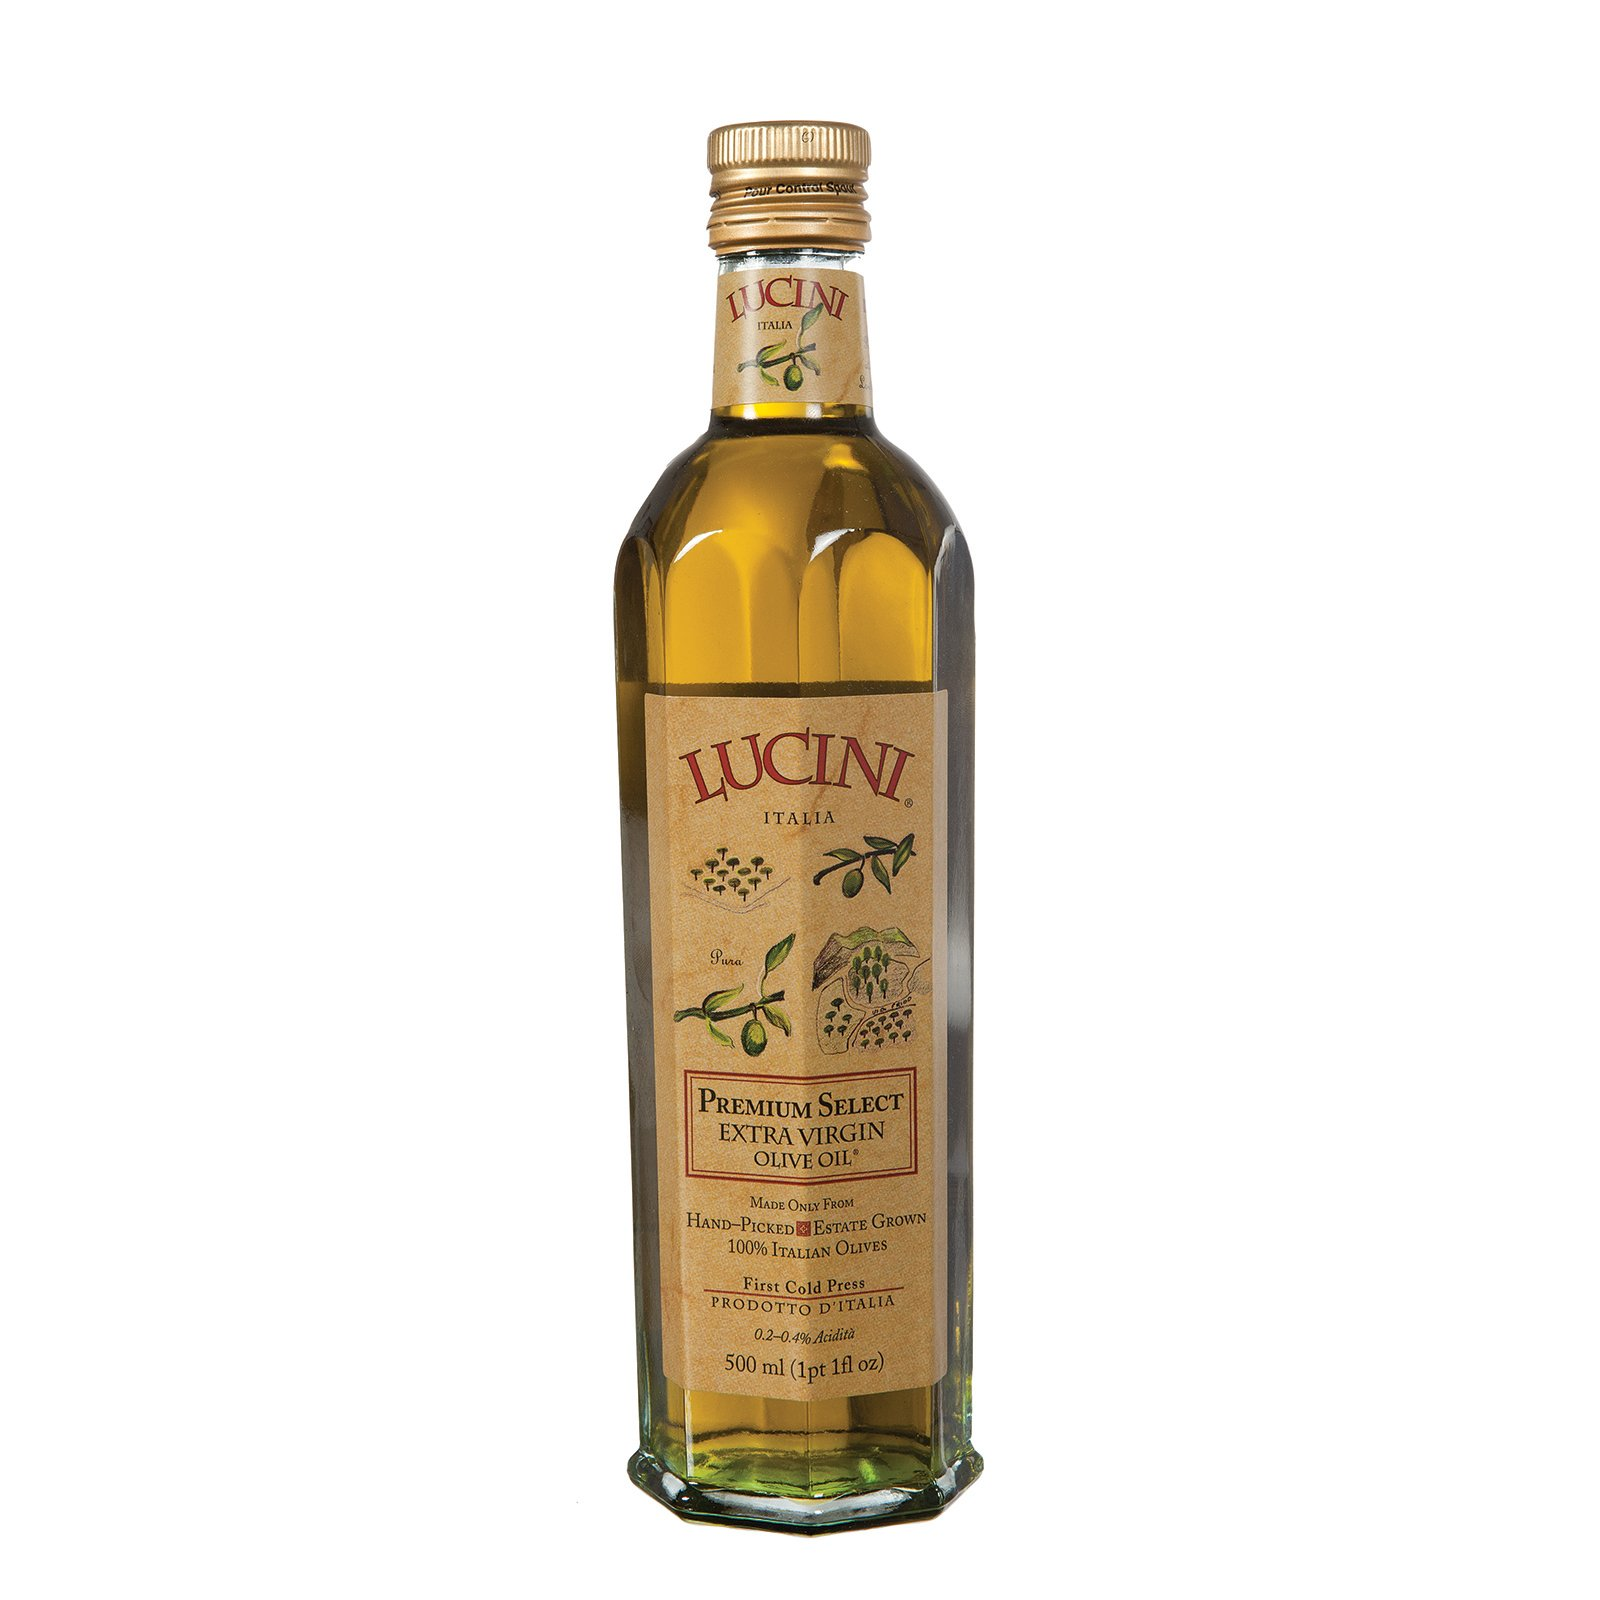 Lucini Extra Virgin Olive Oil, Premium Select, 16.9-Ounce, Glass Bottle